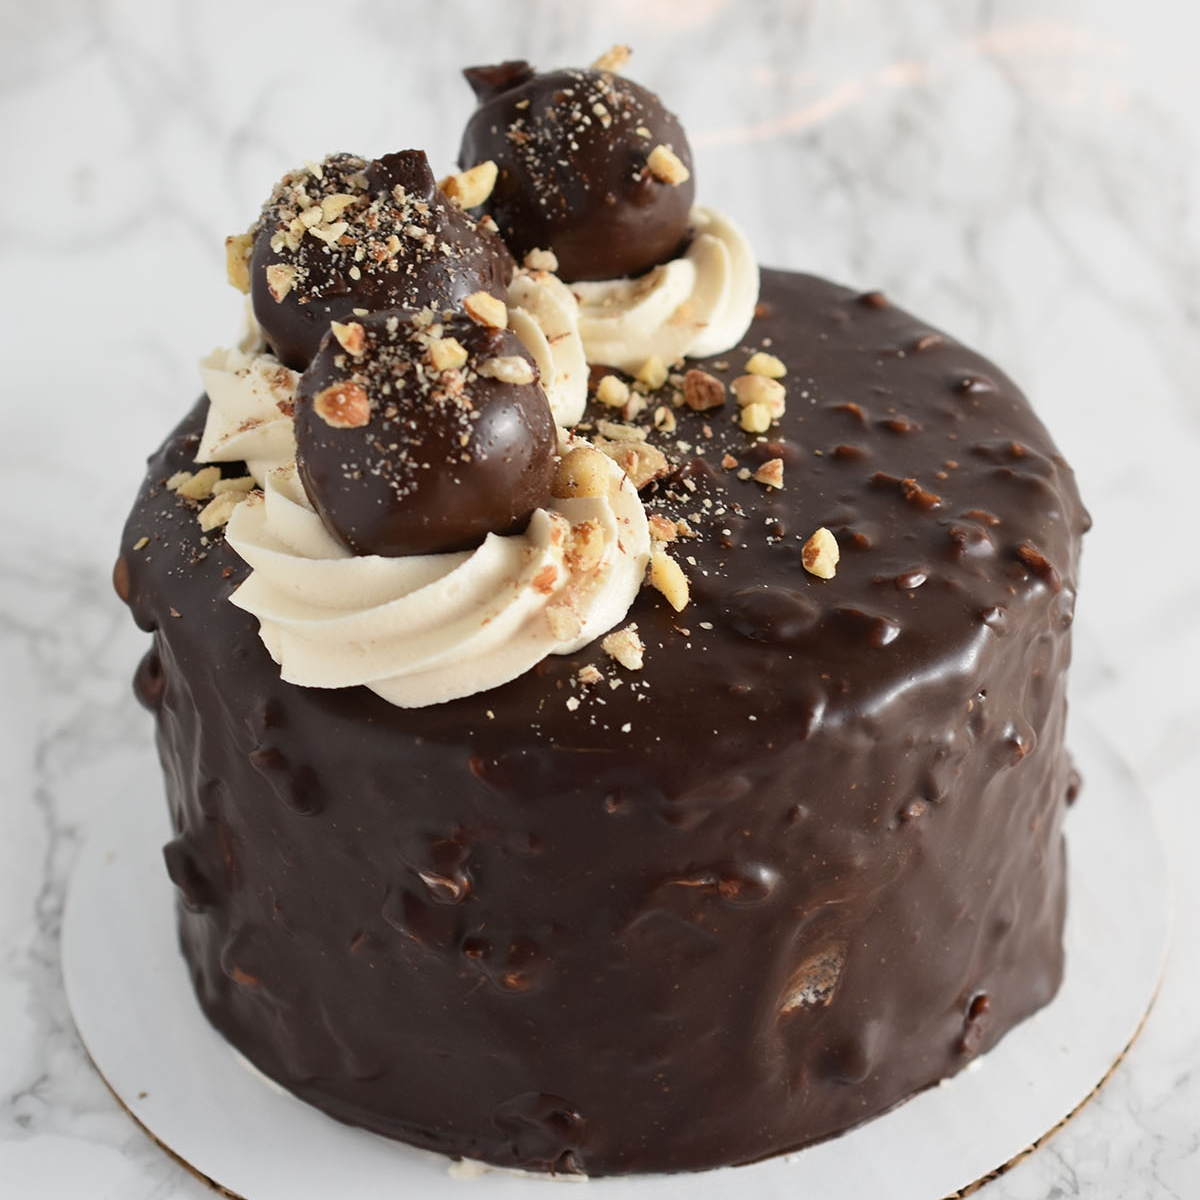 Ferrero Rocher - This decadent cake is based off the infamous Ferrero Rocher chocolates. Moist chocolate layers, Hazelnut crunch ganache inside and of course hazelnut frosting. On top you'll find hand rolled hazelnut cakepops.Gluten Free option available